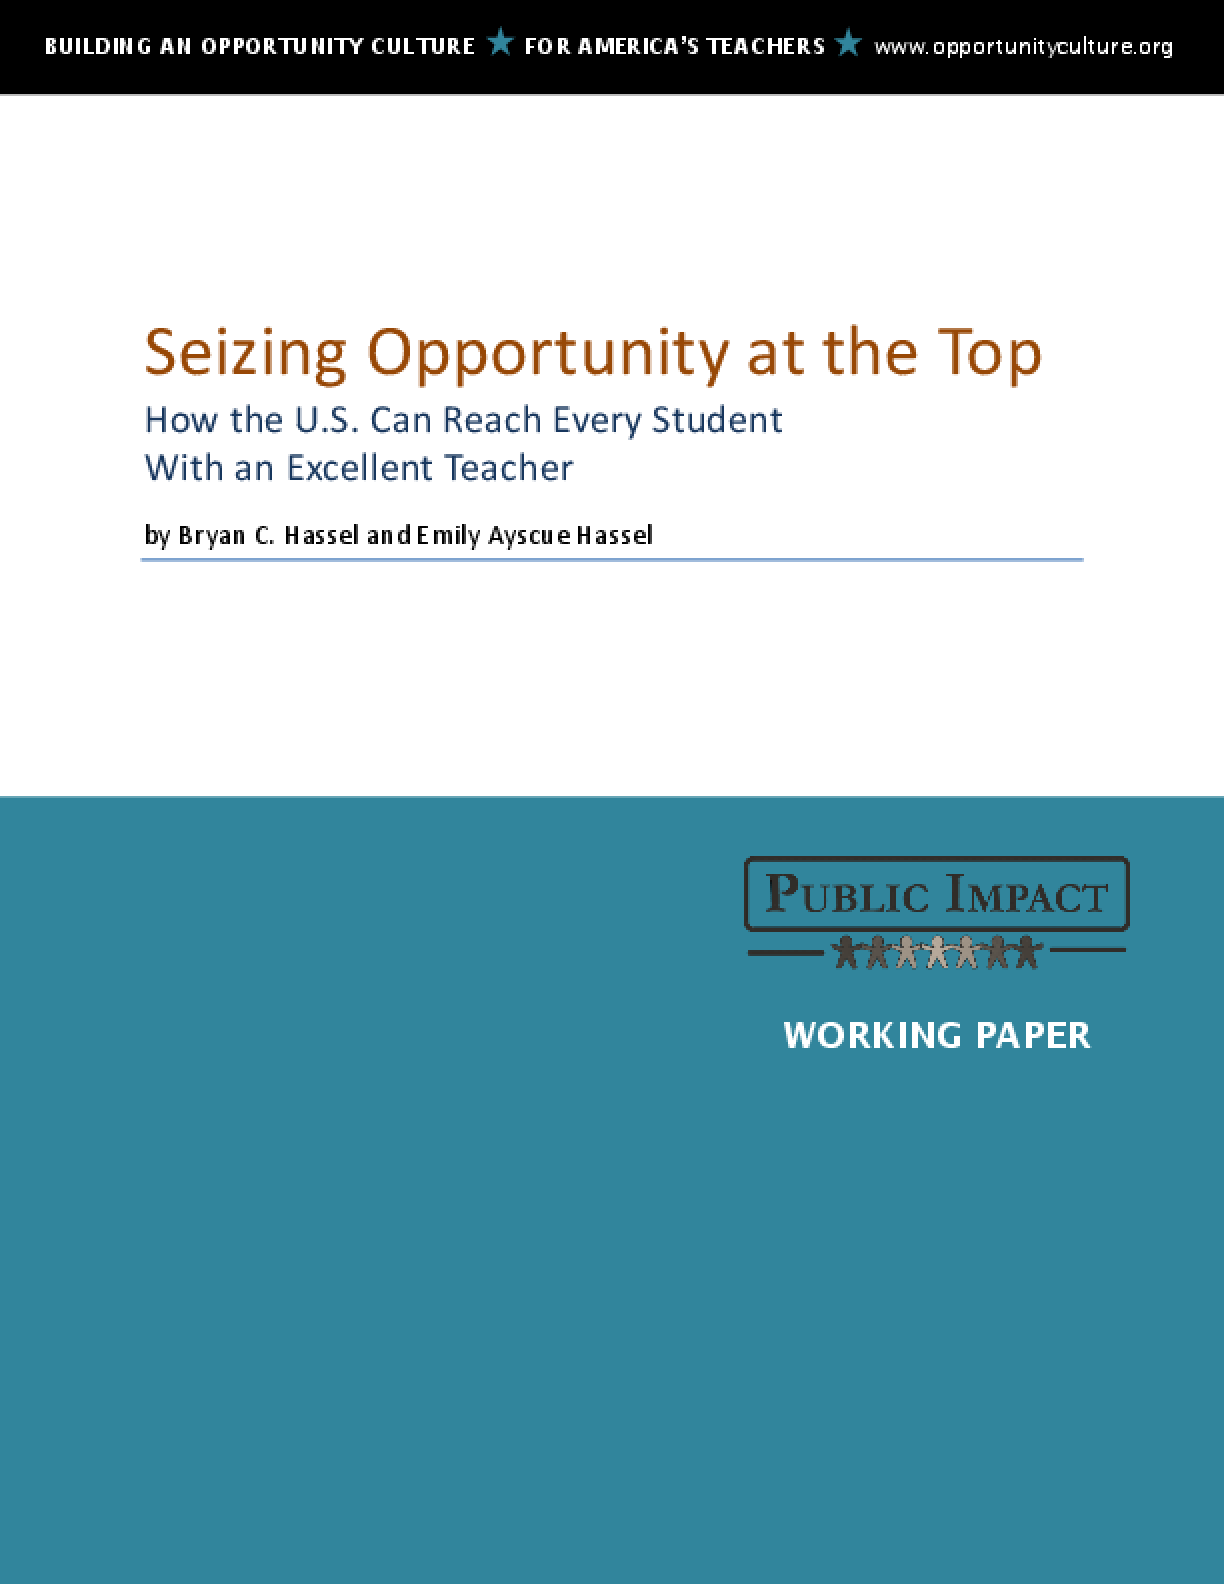 Seizing Opportunity at the Top: How the U.S. Can Reach Every Student With an Excellent Teacher